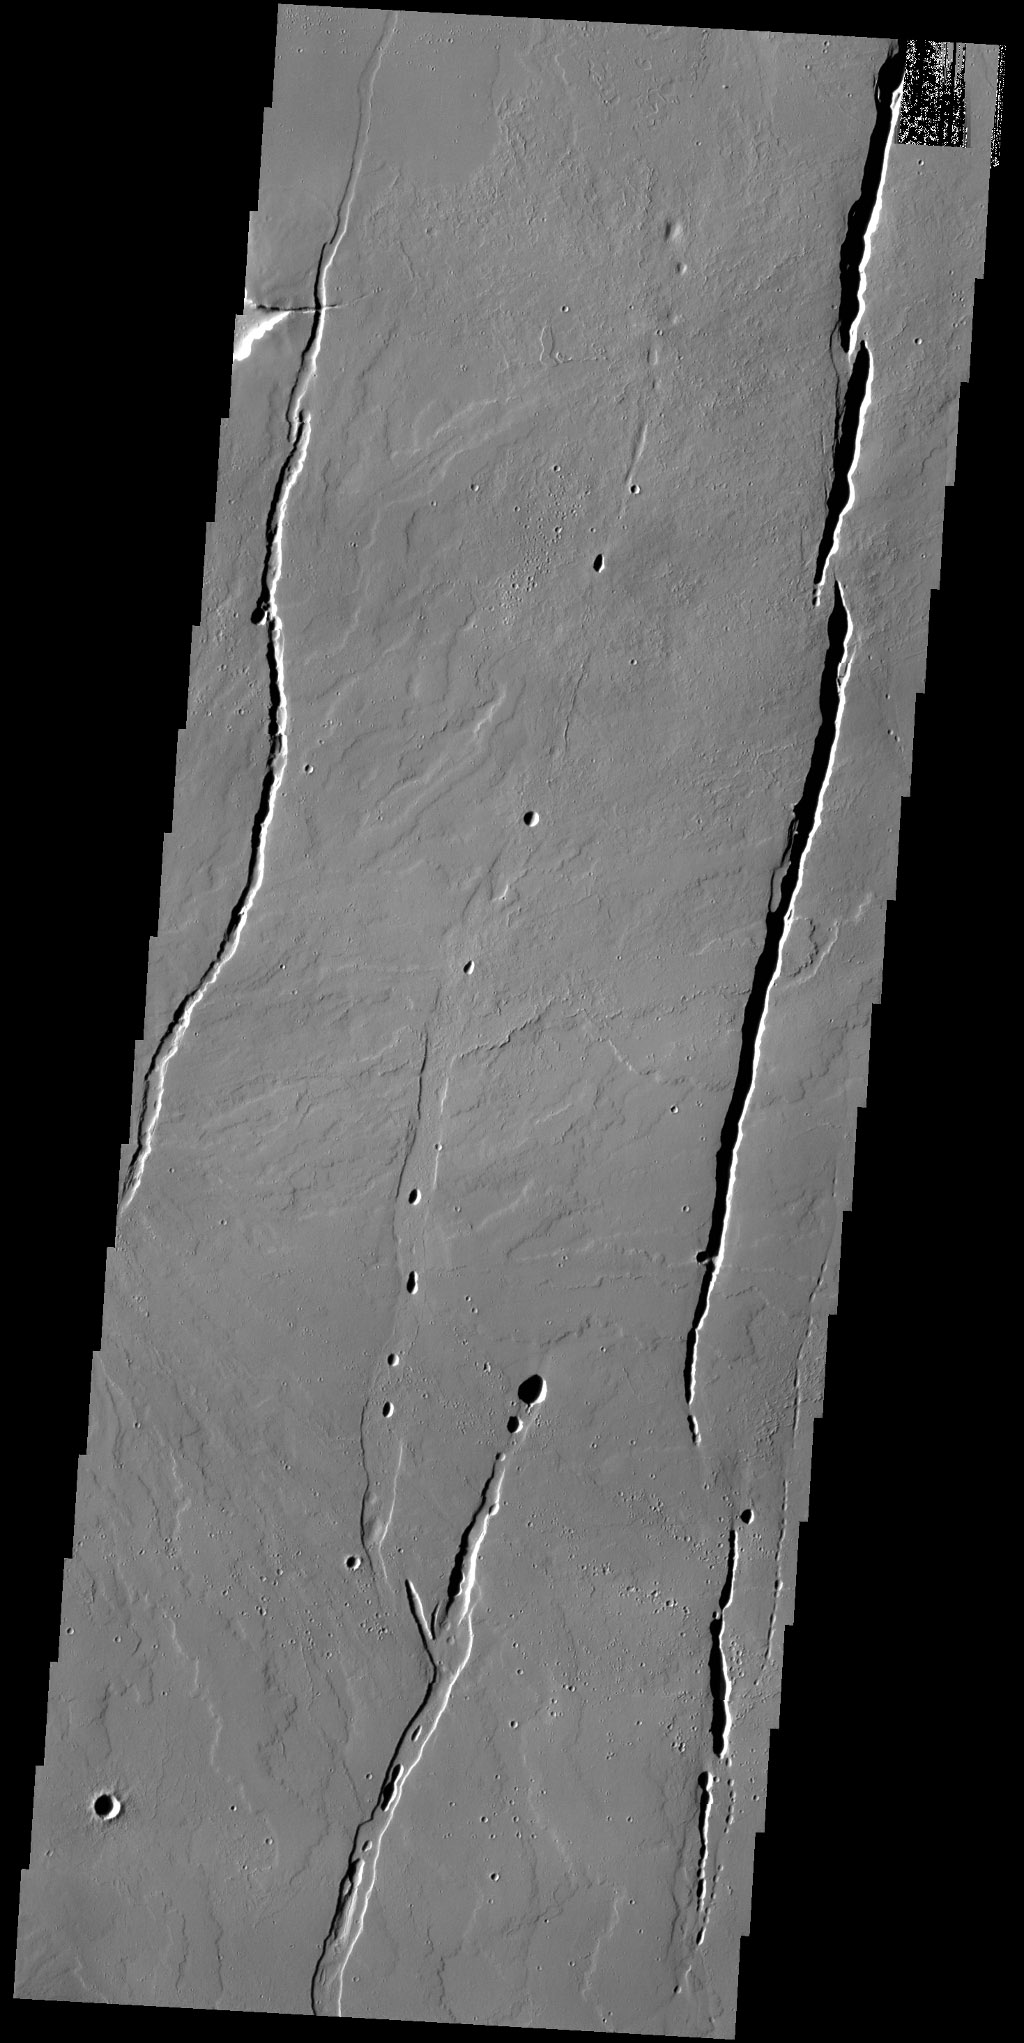 The lava flows and depressions in this image from NASA's 2001 Mars Odyssey spacecraft are located south of Alba Mons.